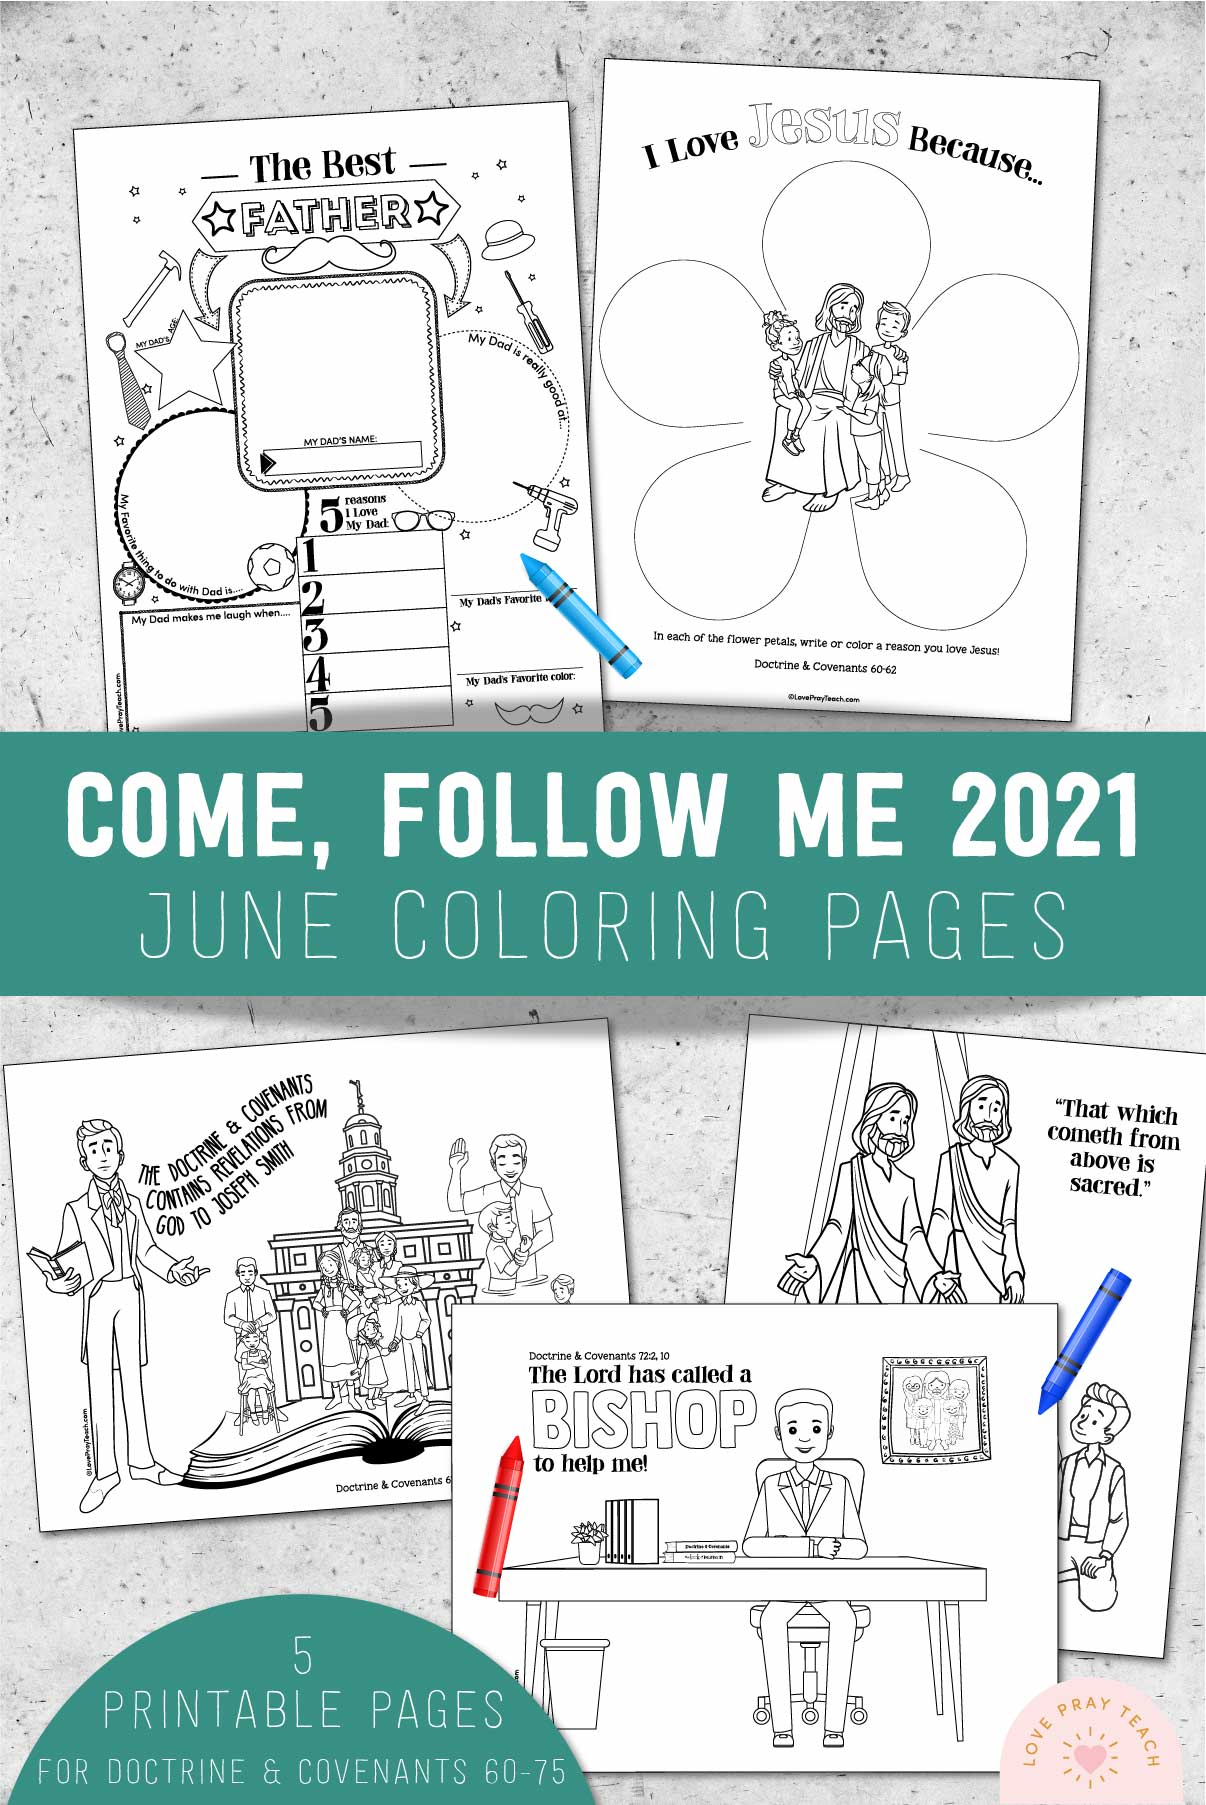 June 2021 Doctrine & Covenants Coloring Pages www.LovePrayTeach.com